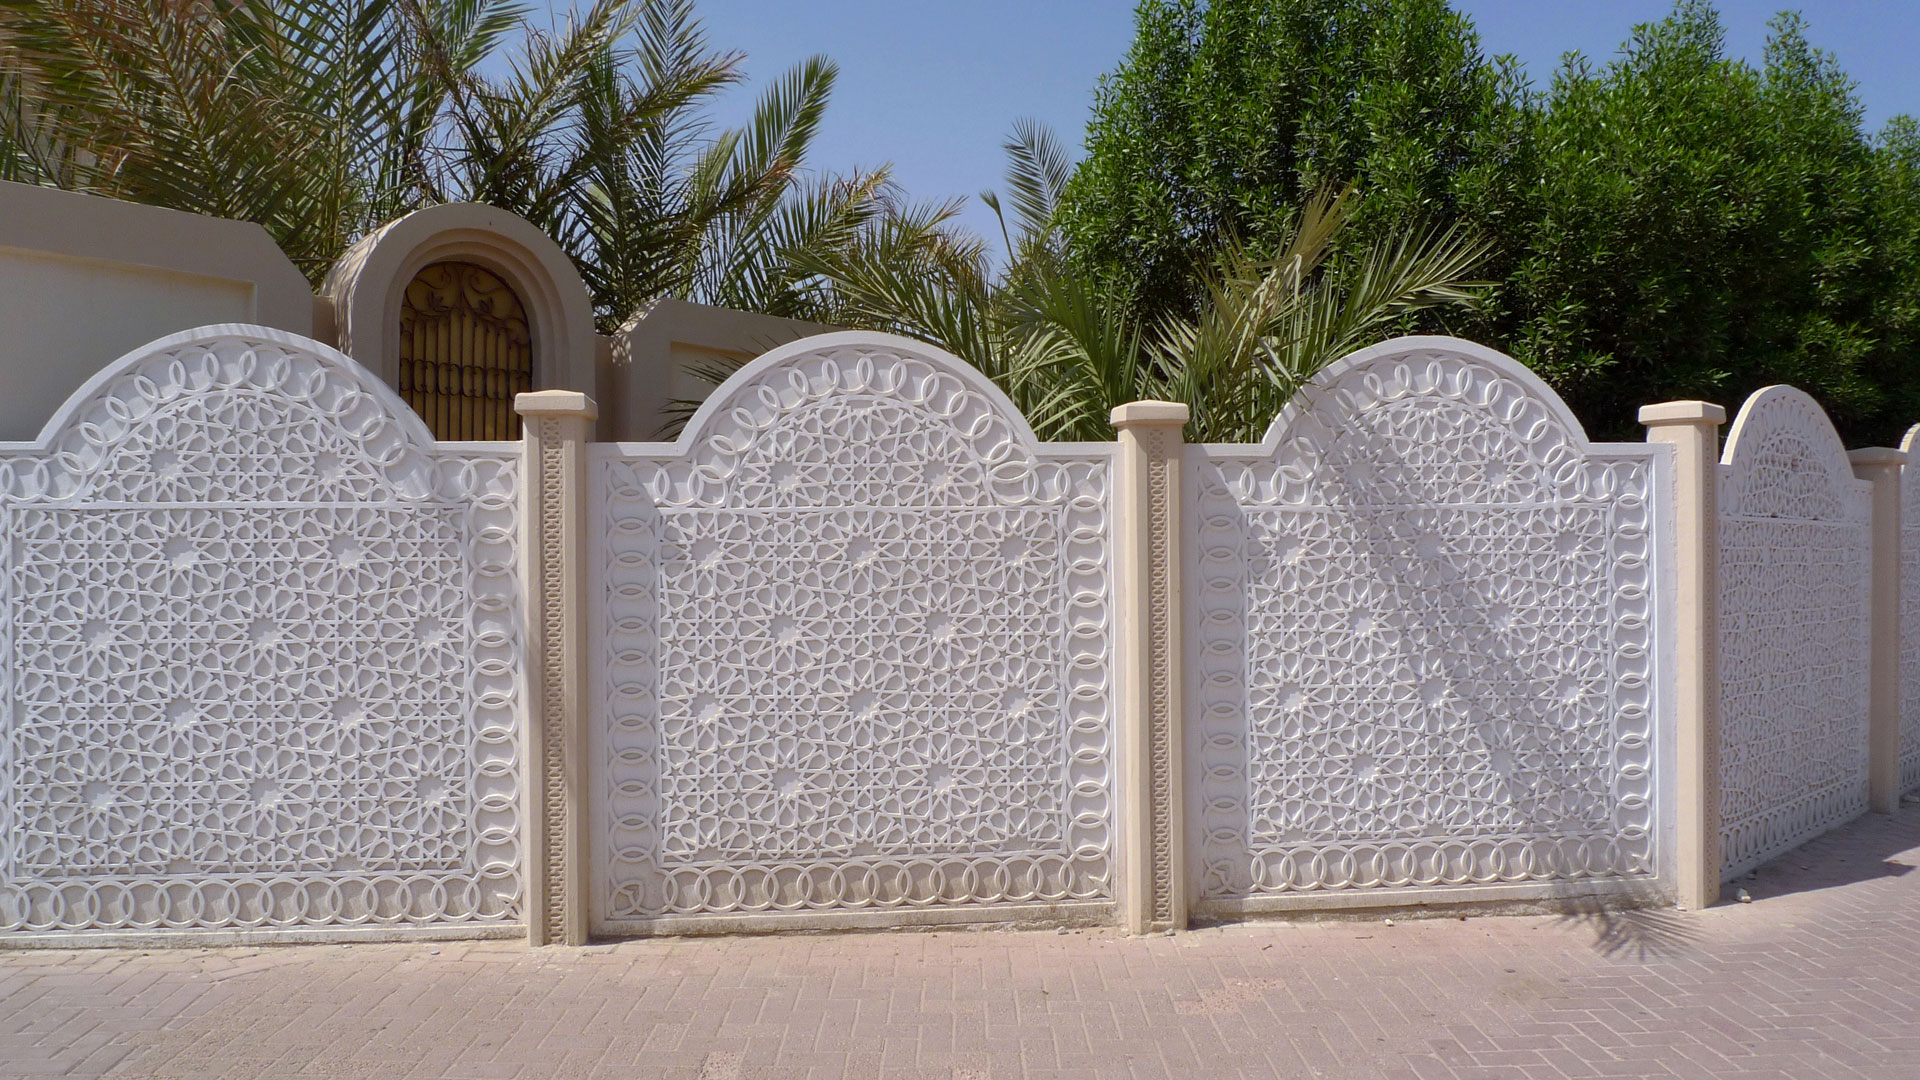 Boundary Wall Paint Design : Boundary wall designs photos joy studio design gallery